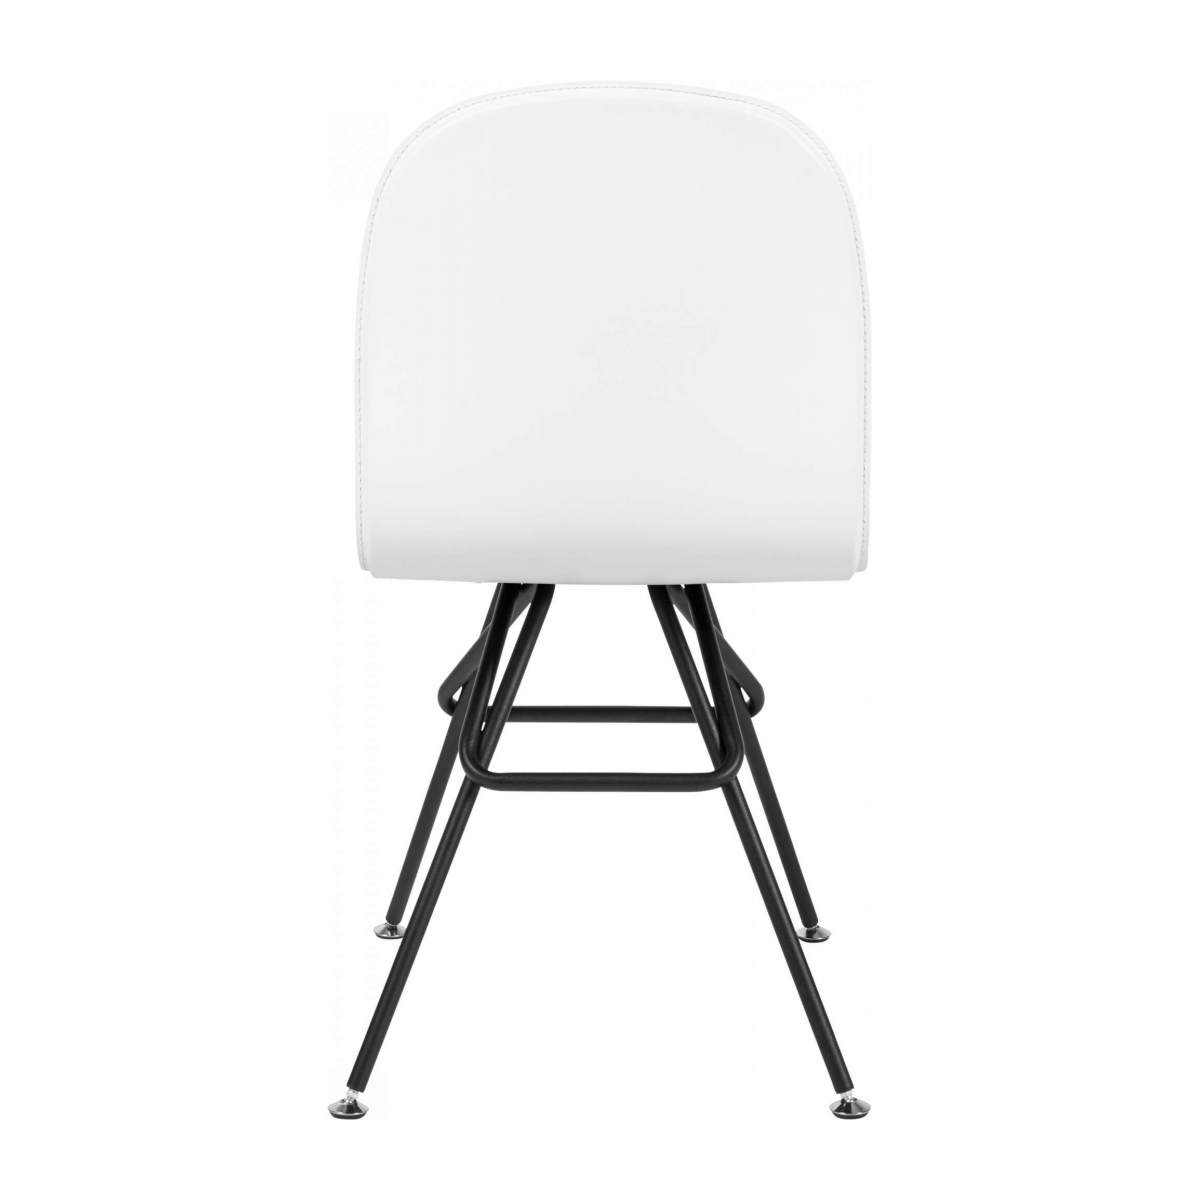 Chair with white faux leather cover and black steel legs n°3